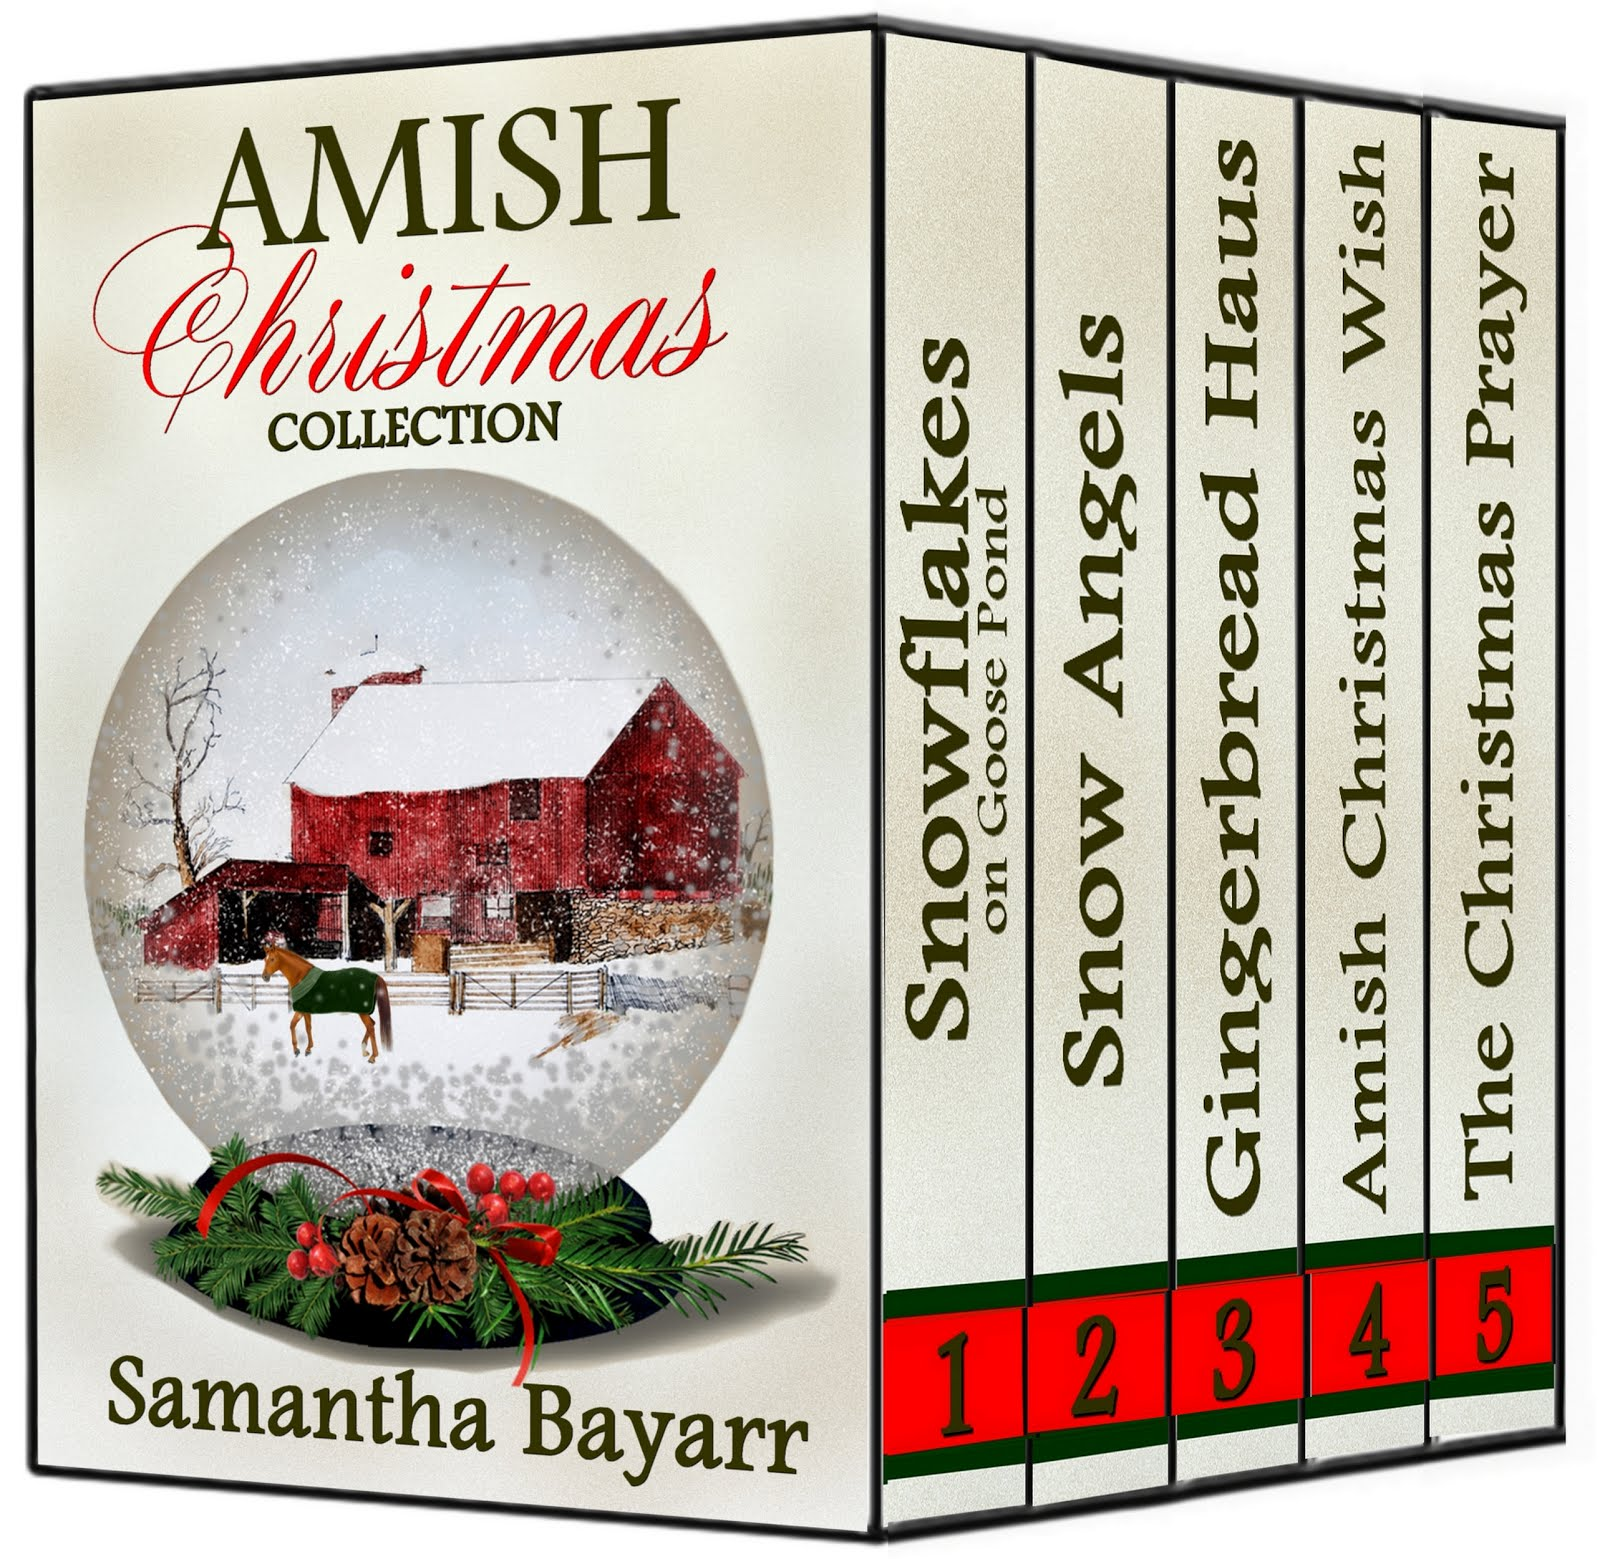 Amish Christmas Collection